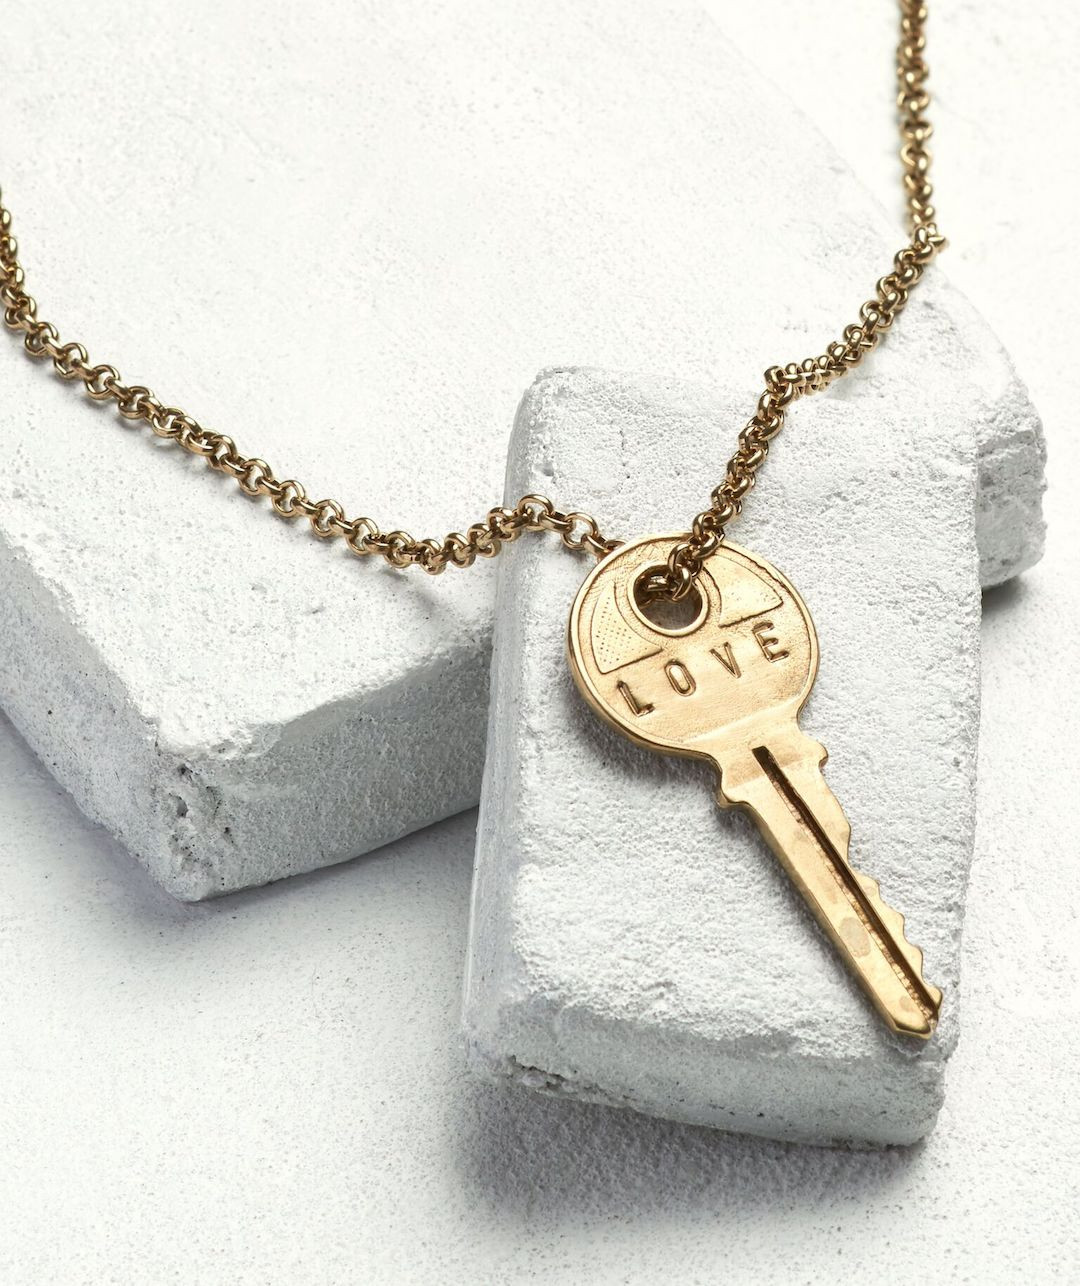 Classic Necklace   $42 | The giving keys